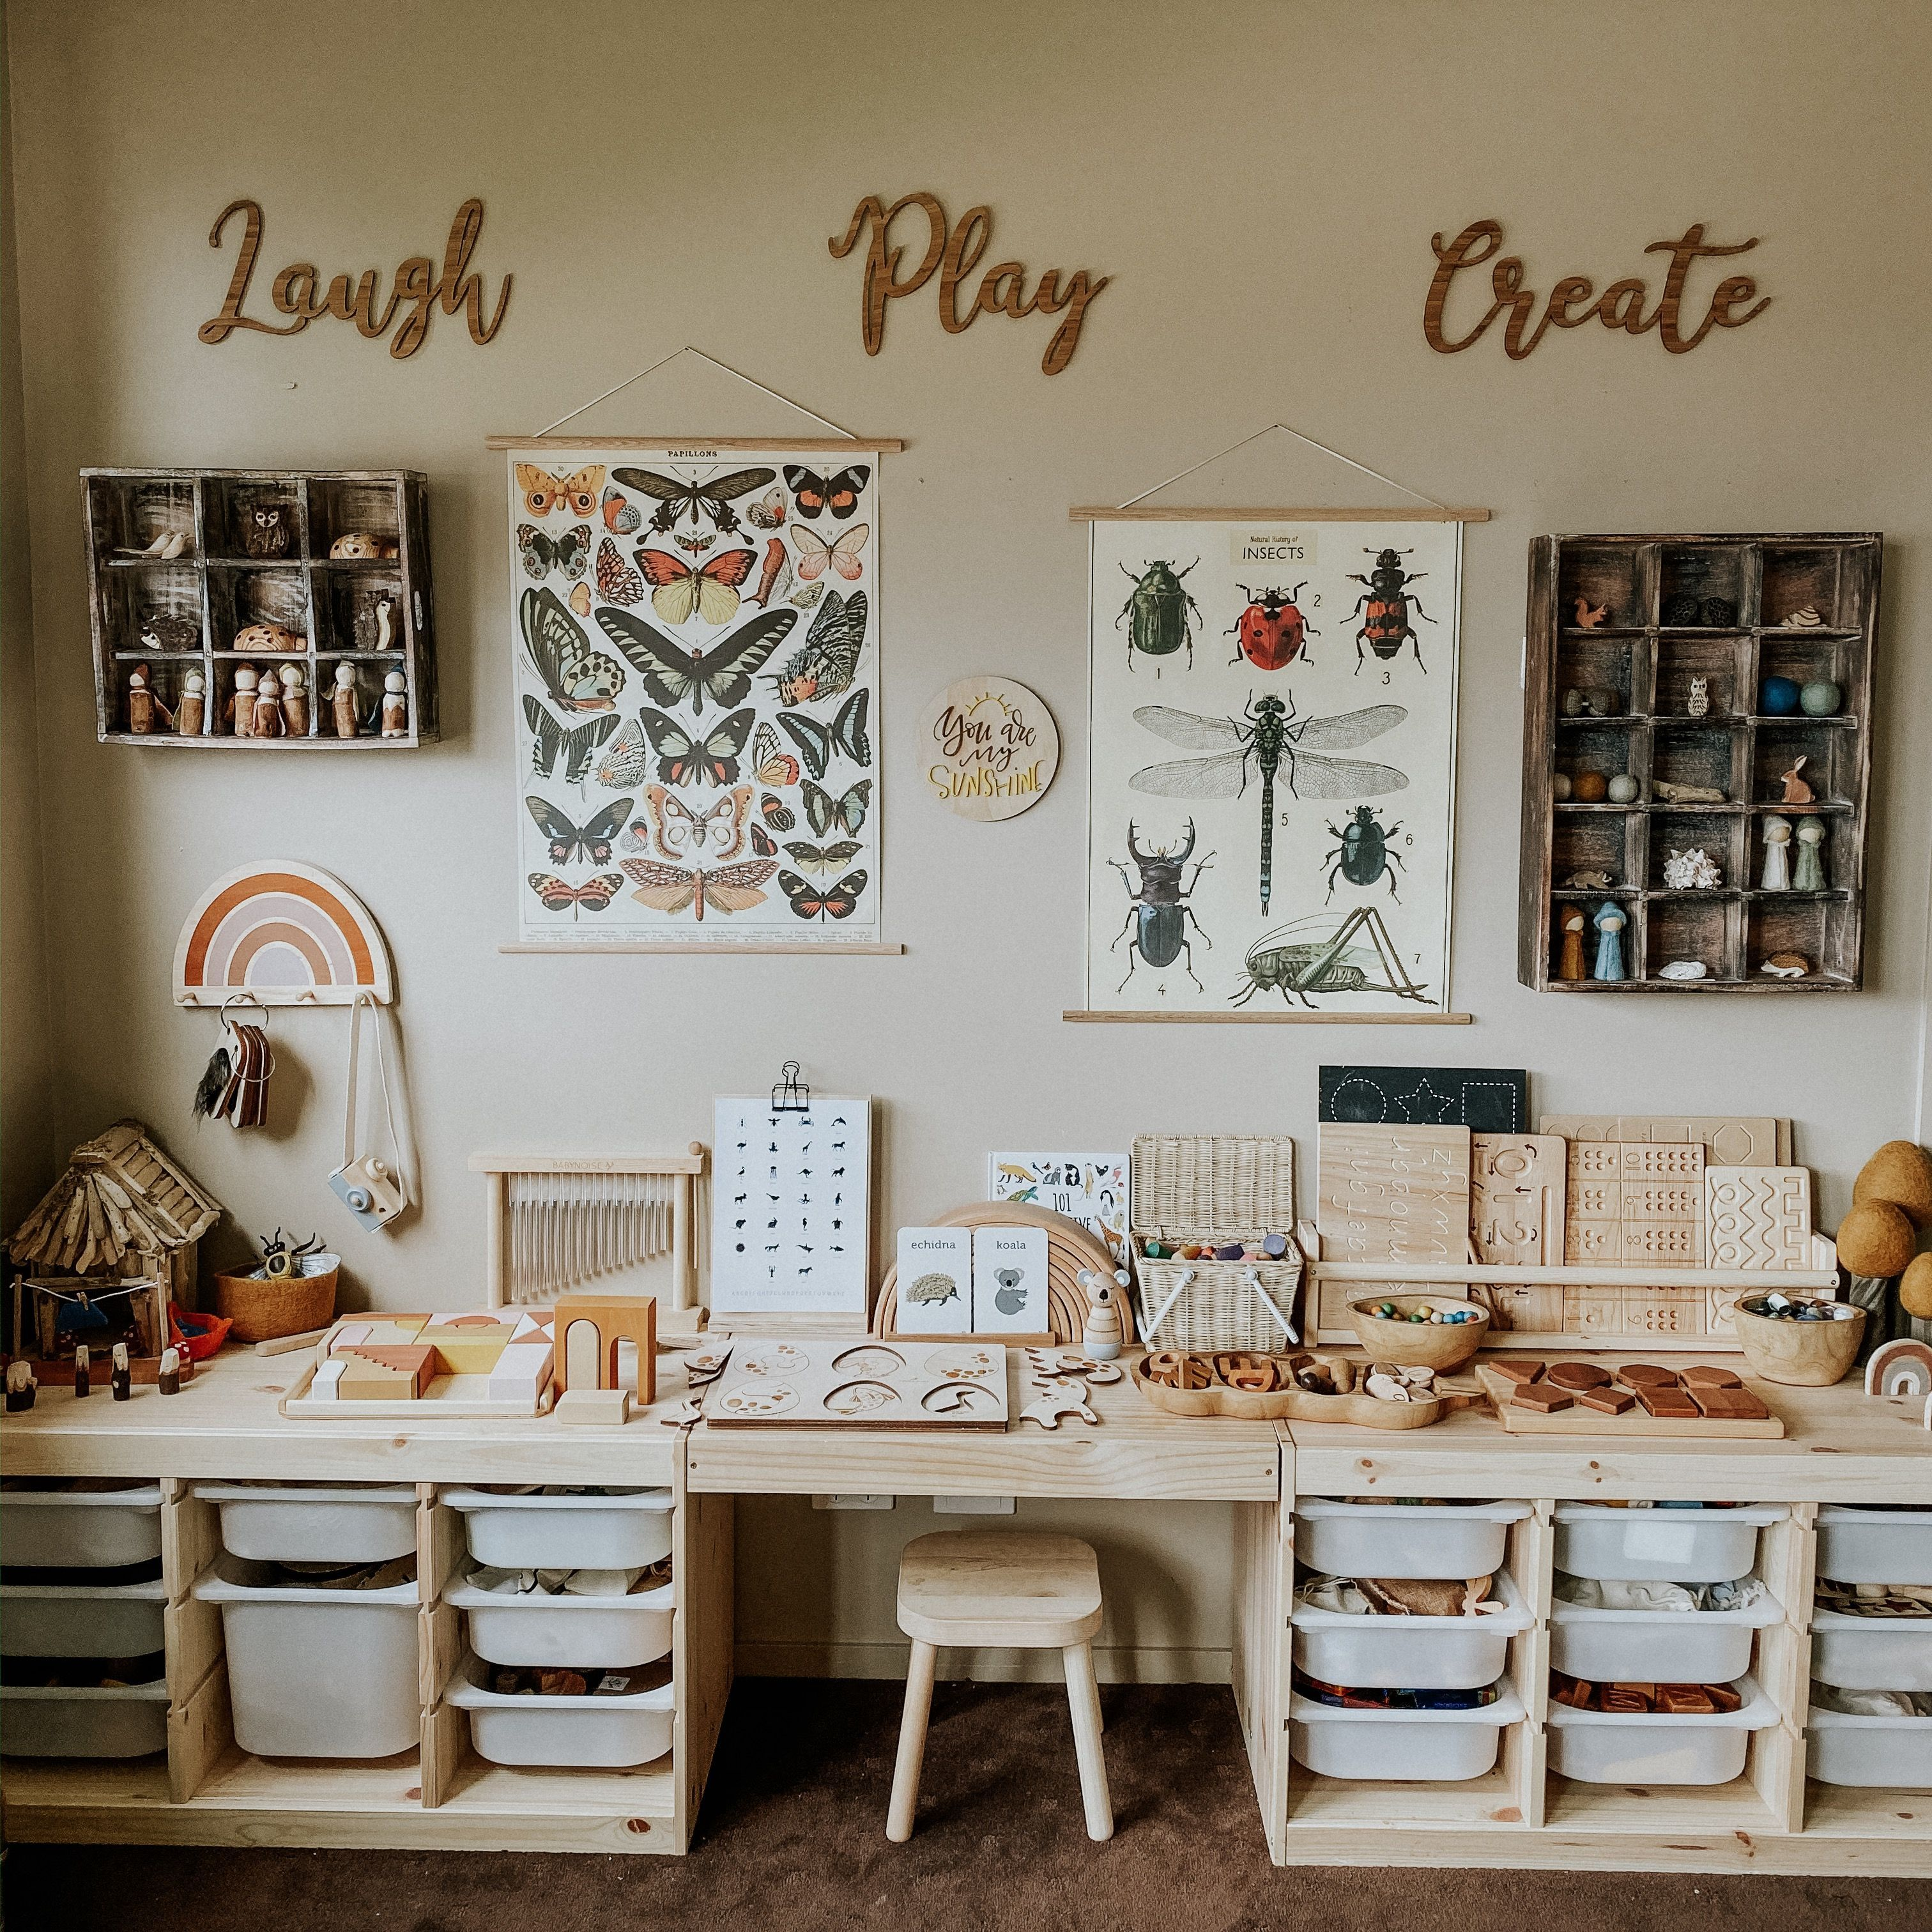 Babies Room Childcare Ideas Play Spaces , Babies Room Childcare Ideas Play Spaces